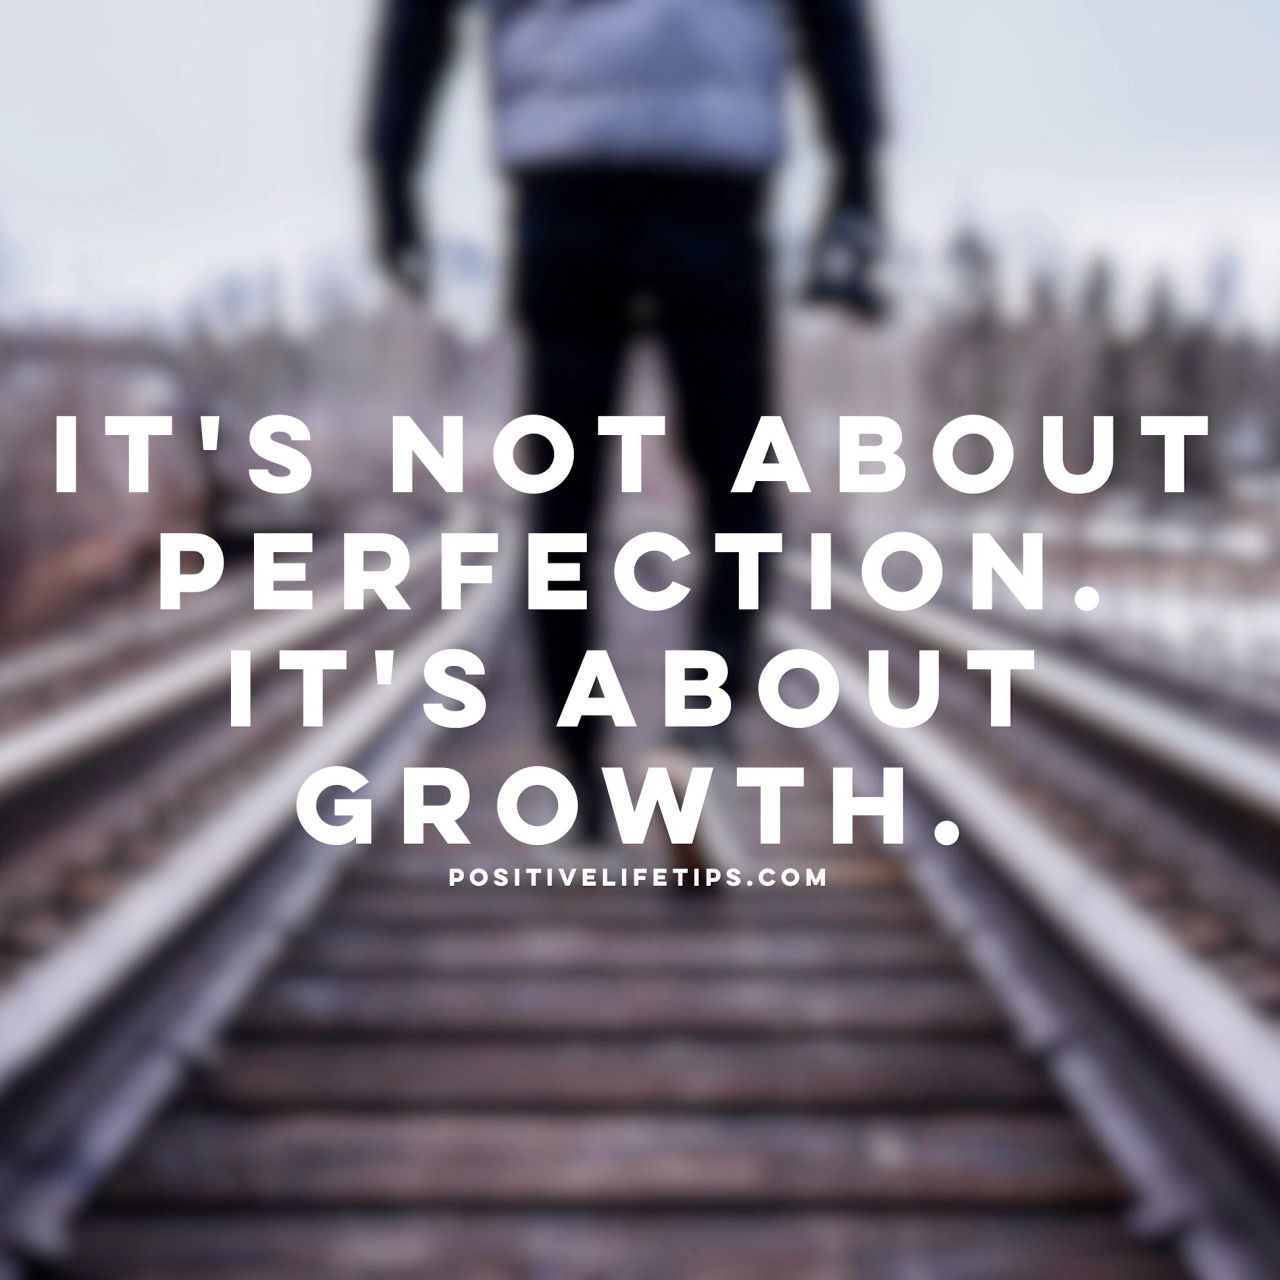 The image of perfection can never be reached. If you're always chasing it you will never be happy. Instead focus on growth. How are you improving your life? Focus on learning & expanding. Focus on YOU! It's your life, MAKE IT EPIC! -Jhon LeBaron